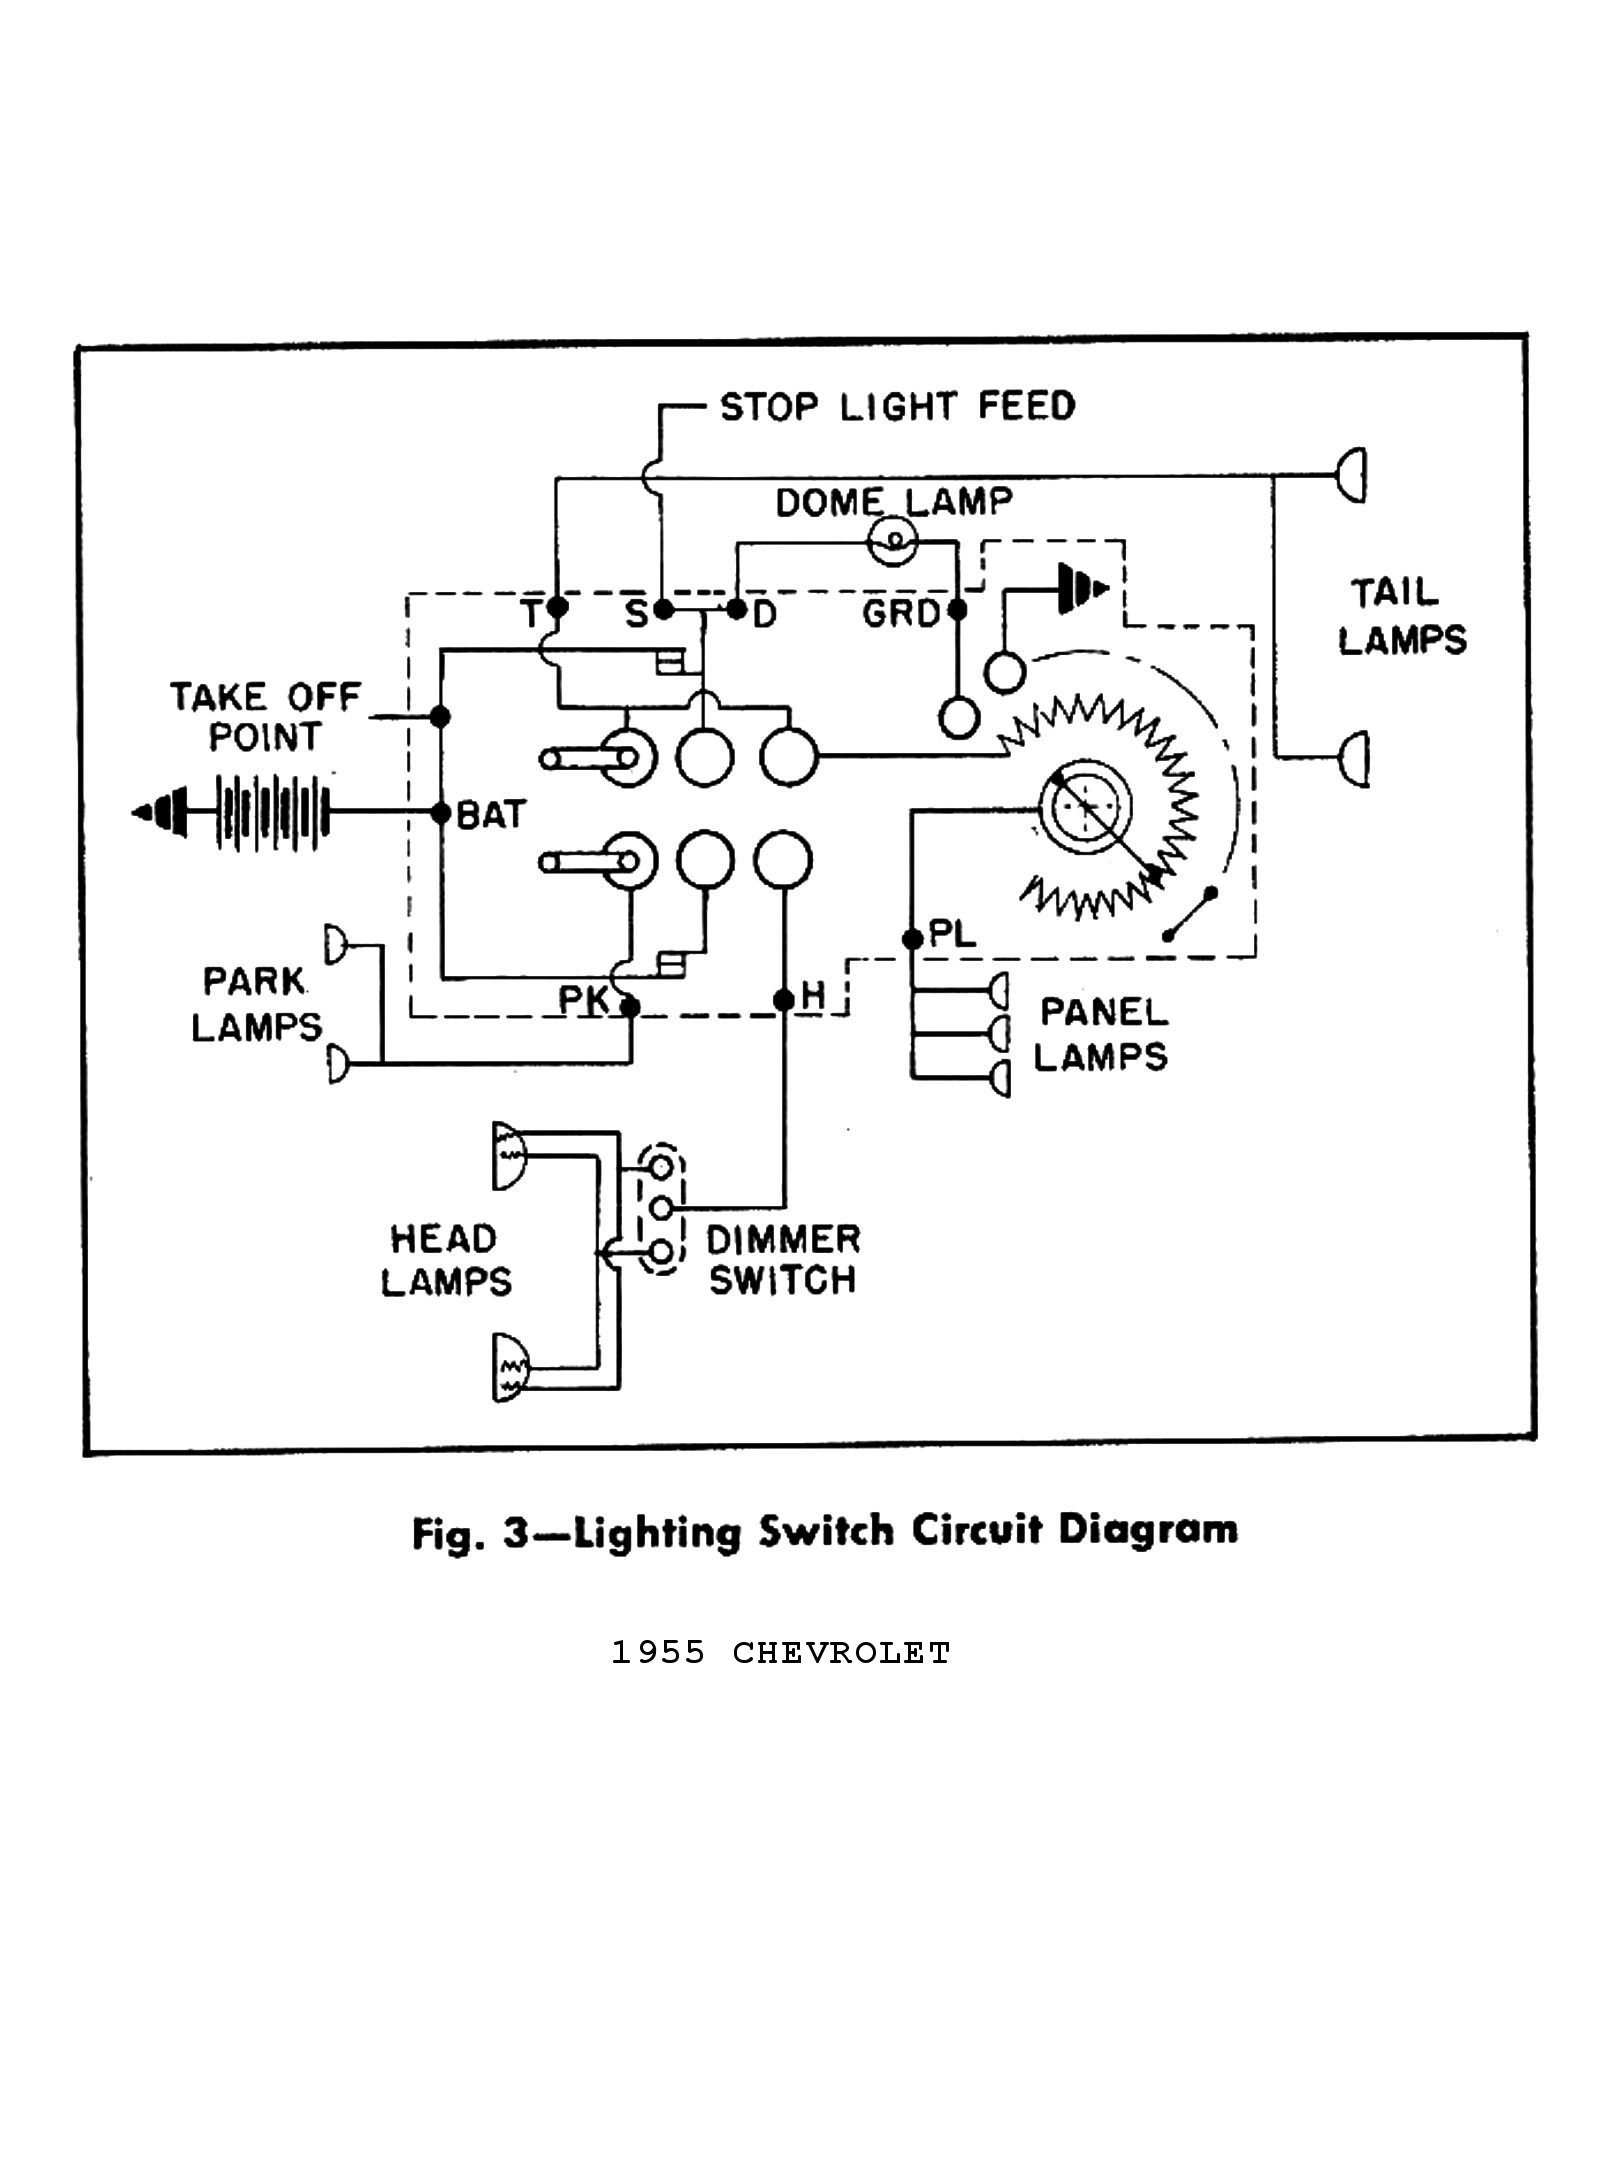 Gm Ignition Switch Schematic | Wiring Diagram on headlight socket wiring diagram, peterbilt headlight wiring diagram, 1967 camaro headlight motor wiring diagram, gm headlight switch assembly, relay wiring diagram, 1957 chevy headlight switch diagram, chevy headlight wiring diagram, 2000 vw jetta stereo wiring diagram, gm upfitter wiring-diagram, 2001 honda civic headlight wiring diagram, h4 headlight wiring diagram, chevy alternator regulator wiring diagram, 2001 chevy venture radio wiring diagram, 55 chevy headlight switch diagram, chevrolet wiring diagram, 3 wire headlight wiring diagram, gm headlight switch parts, gm wiring diagrams for dummies, gm headlight wiring harness, jeep grand cherokee fuse box diagram,